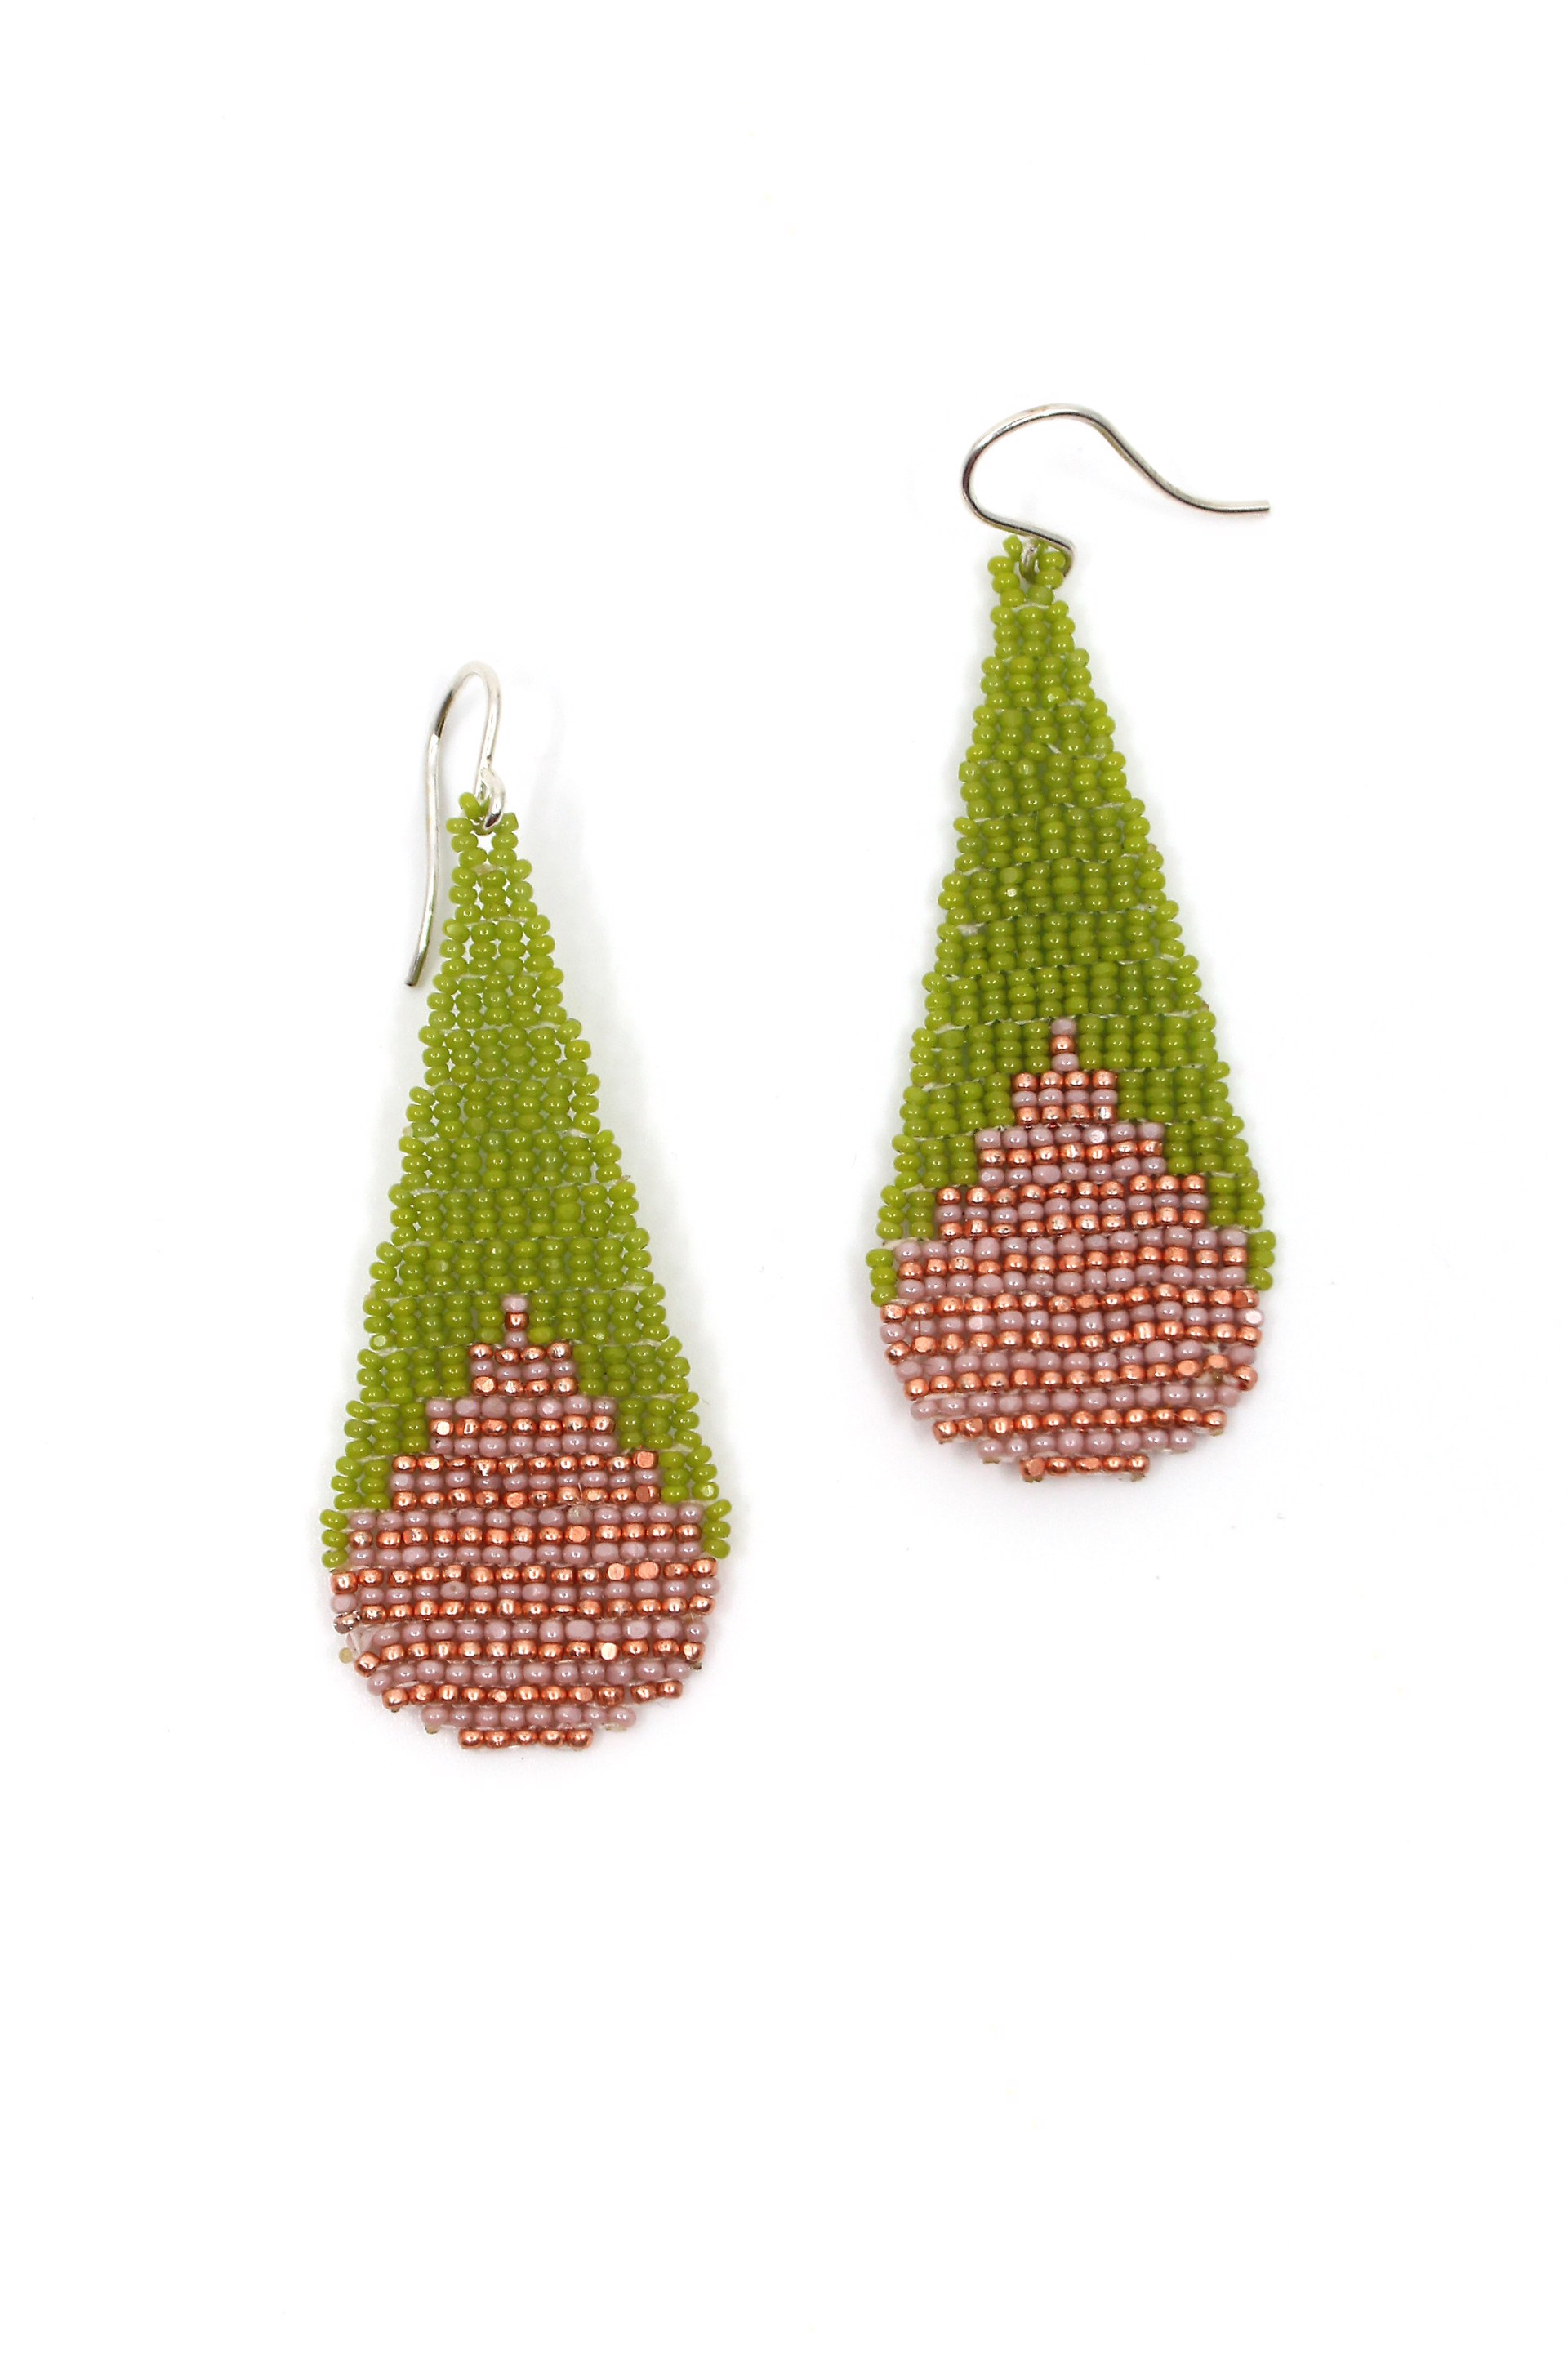 Watermelon Stripe Tear Drop Earrings by Mikayla Patton